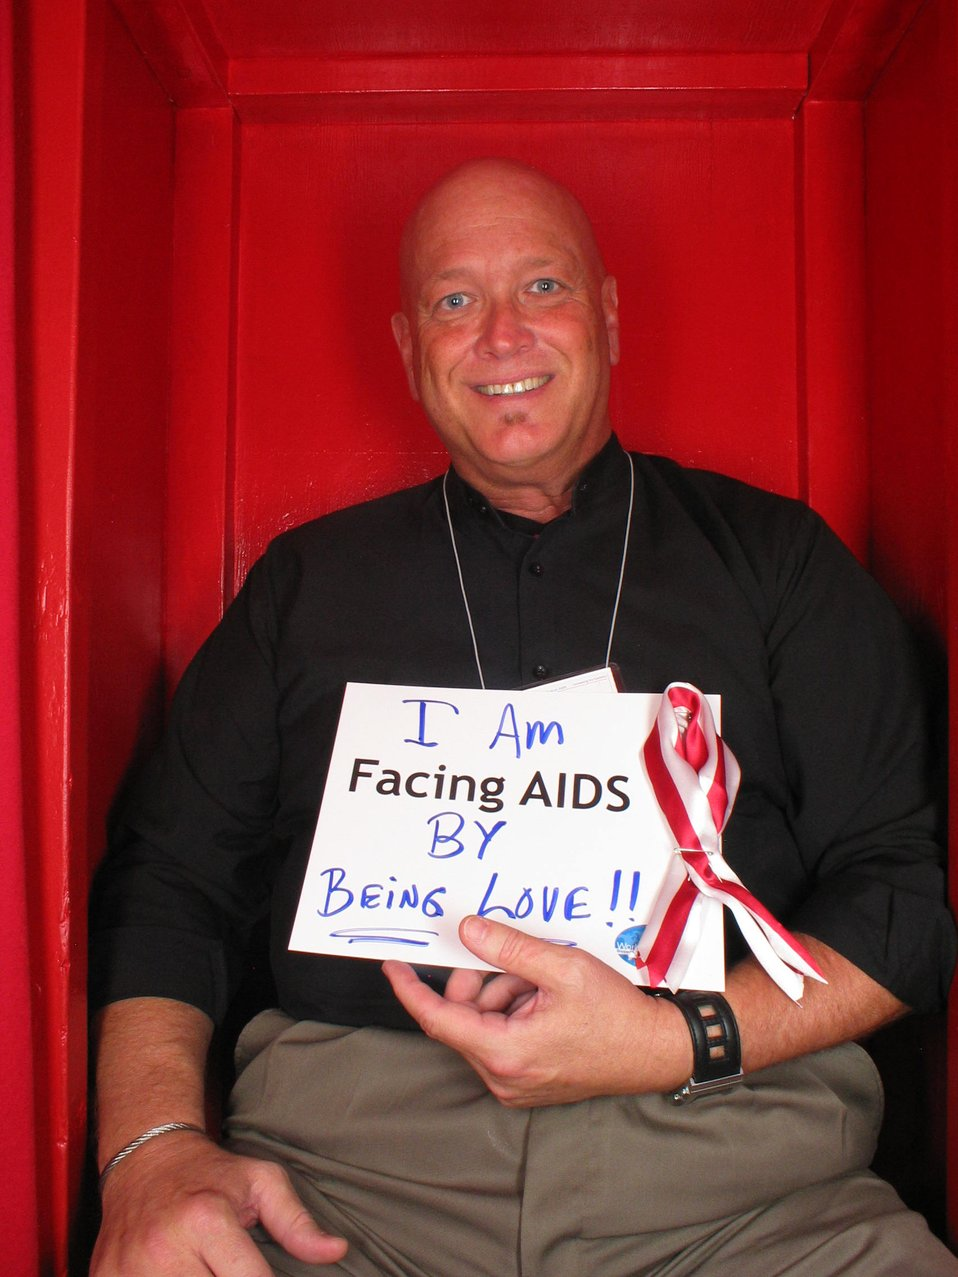 I am Facing AIDS by being love!!!